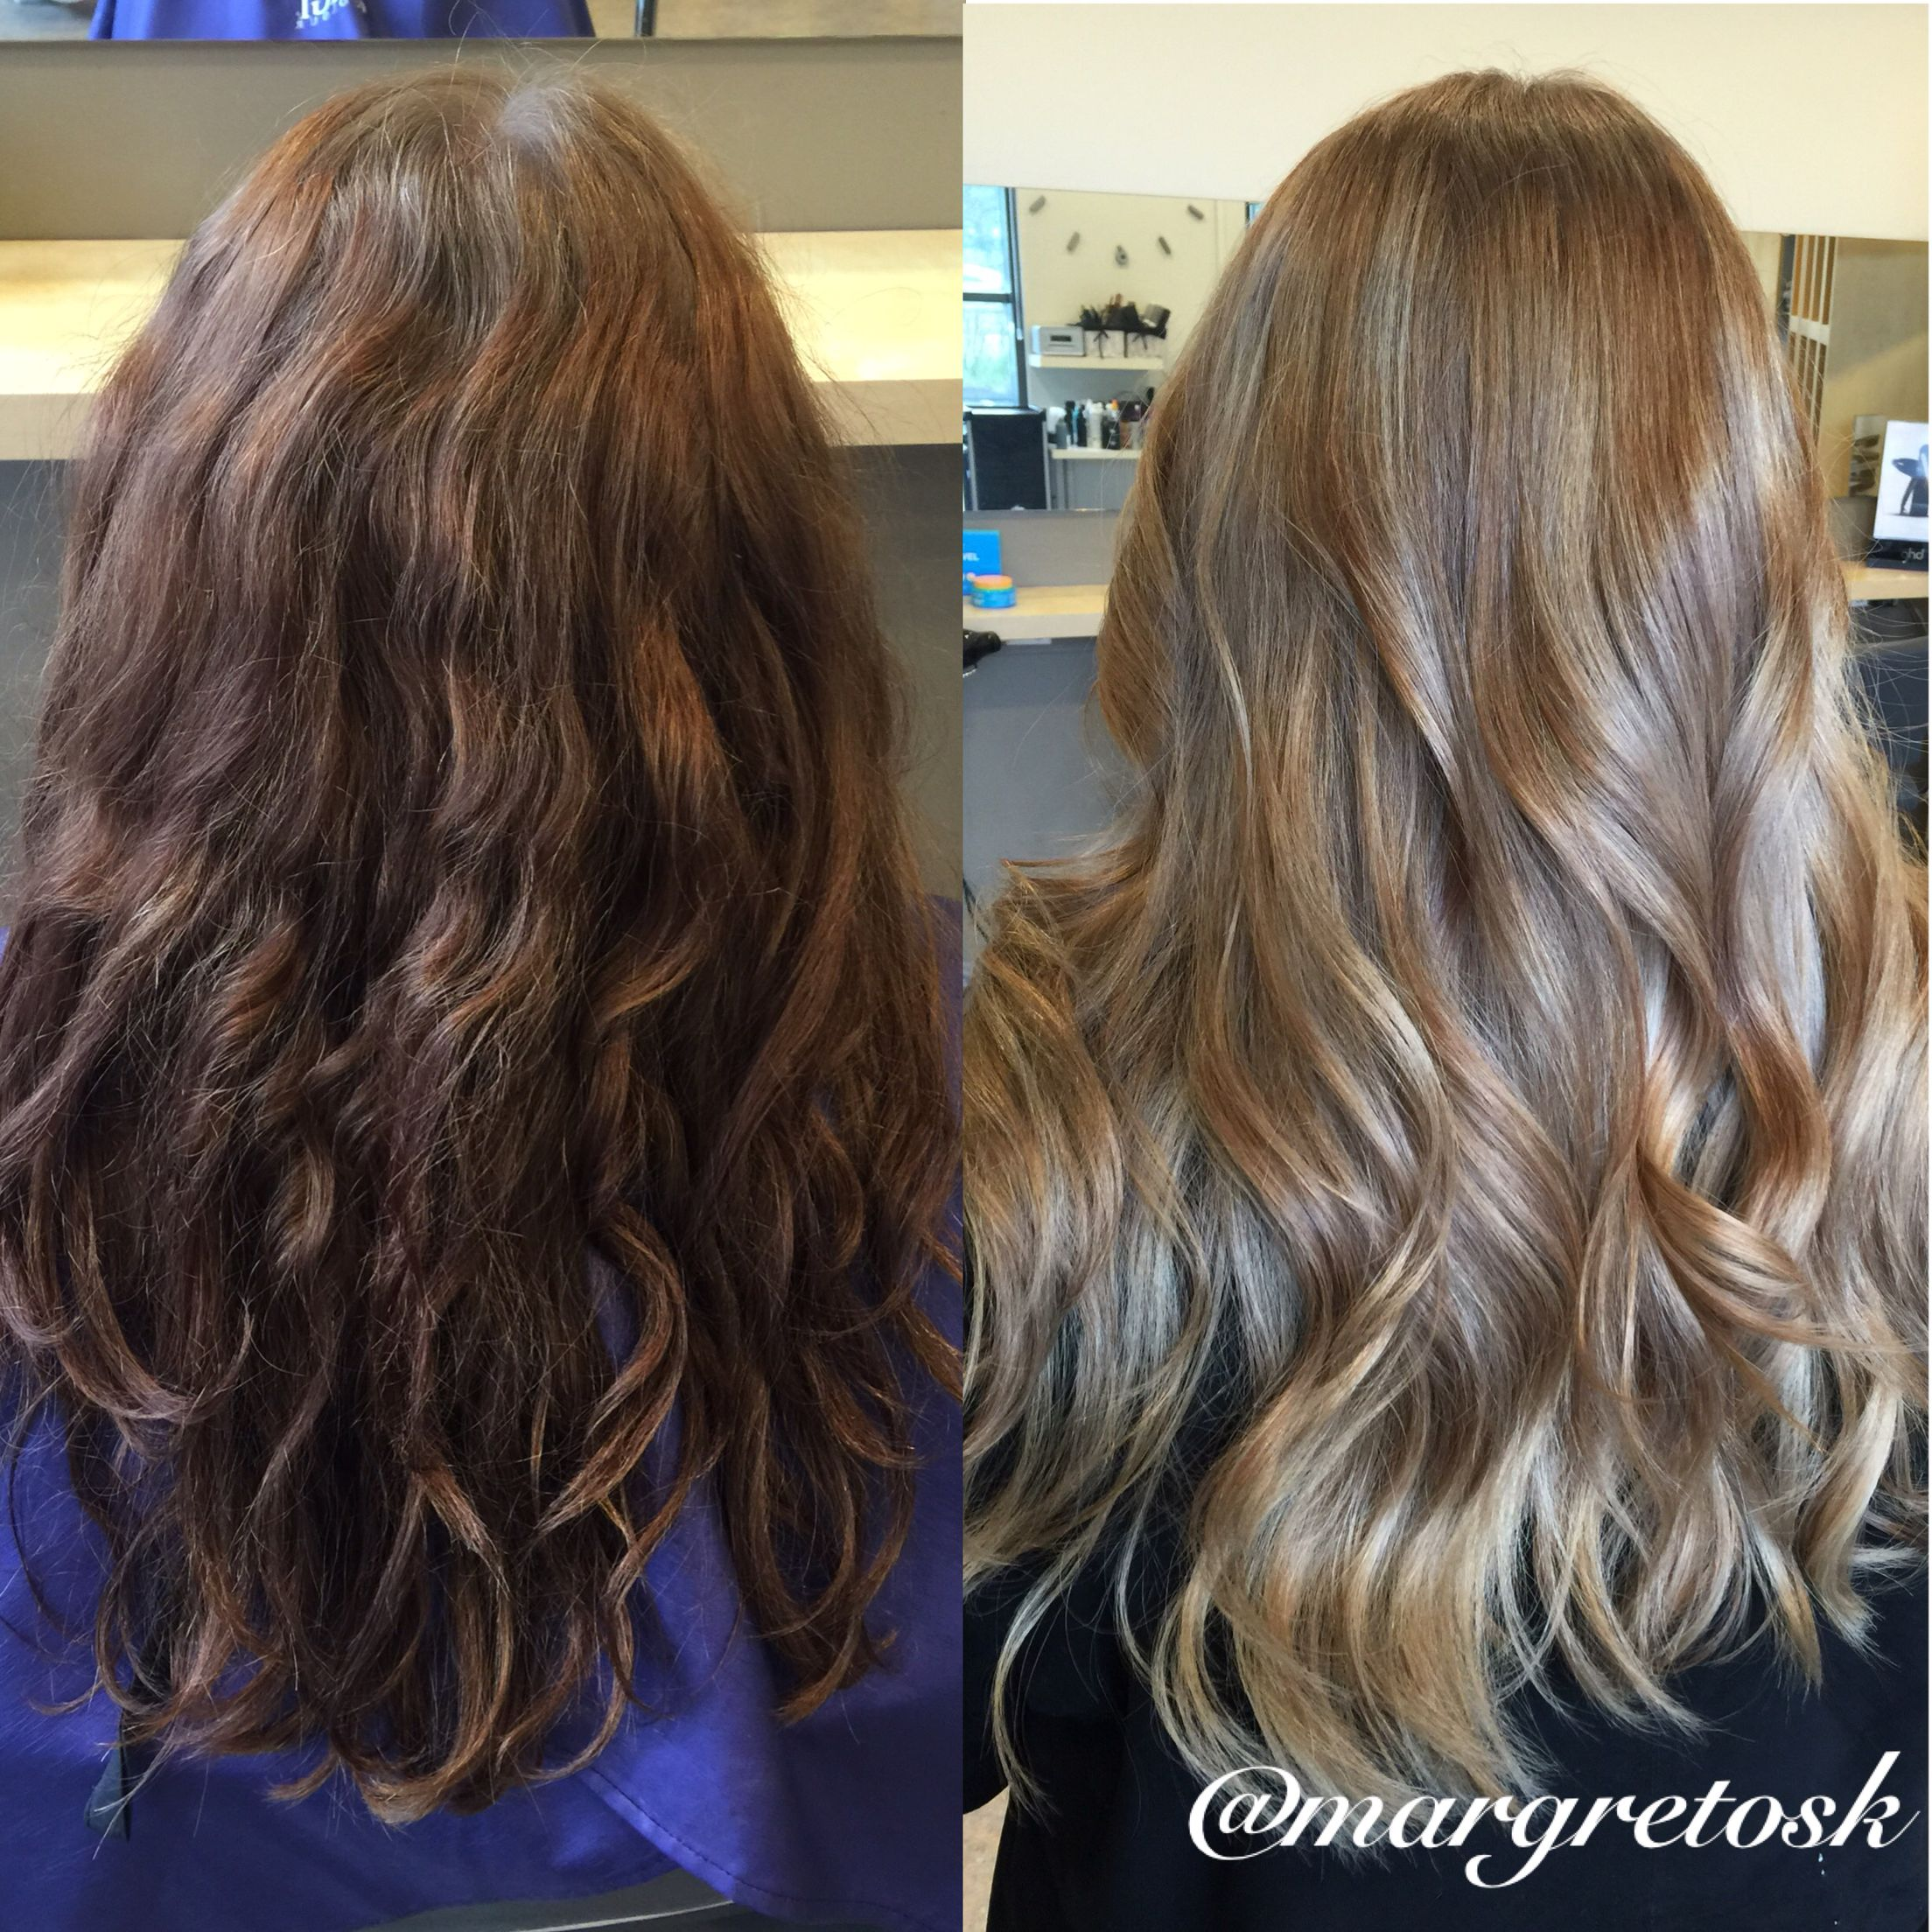 Before And After coloring From dark brown to a softer more natural